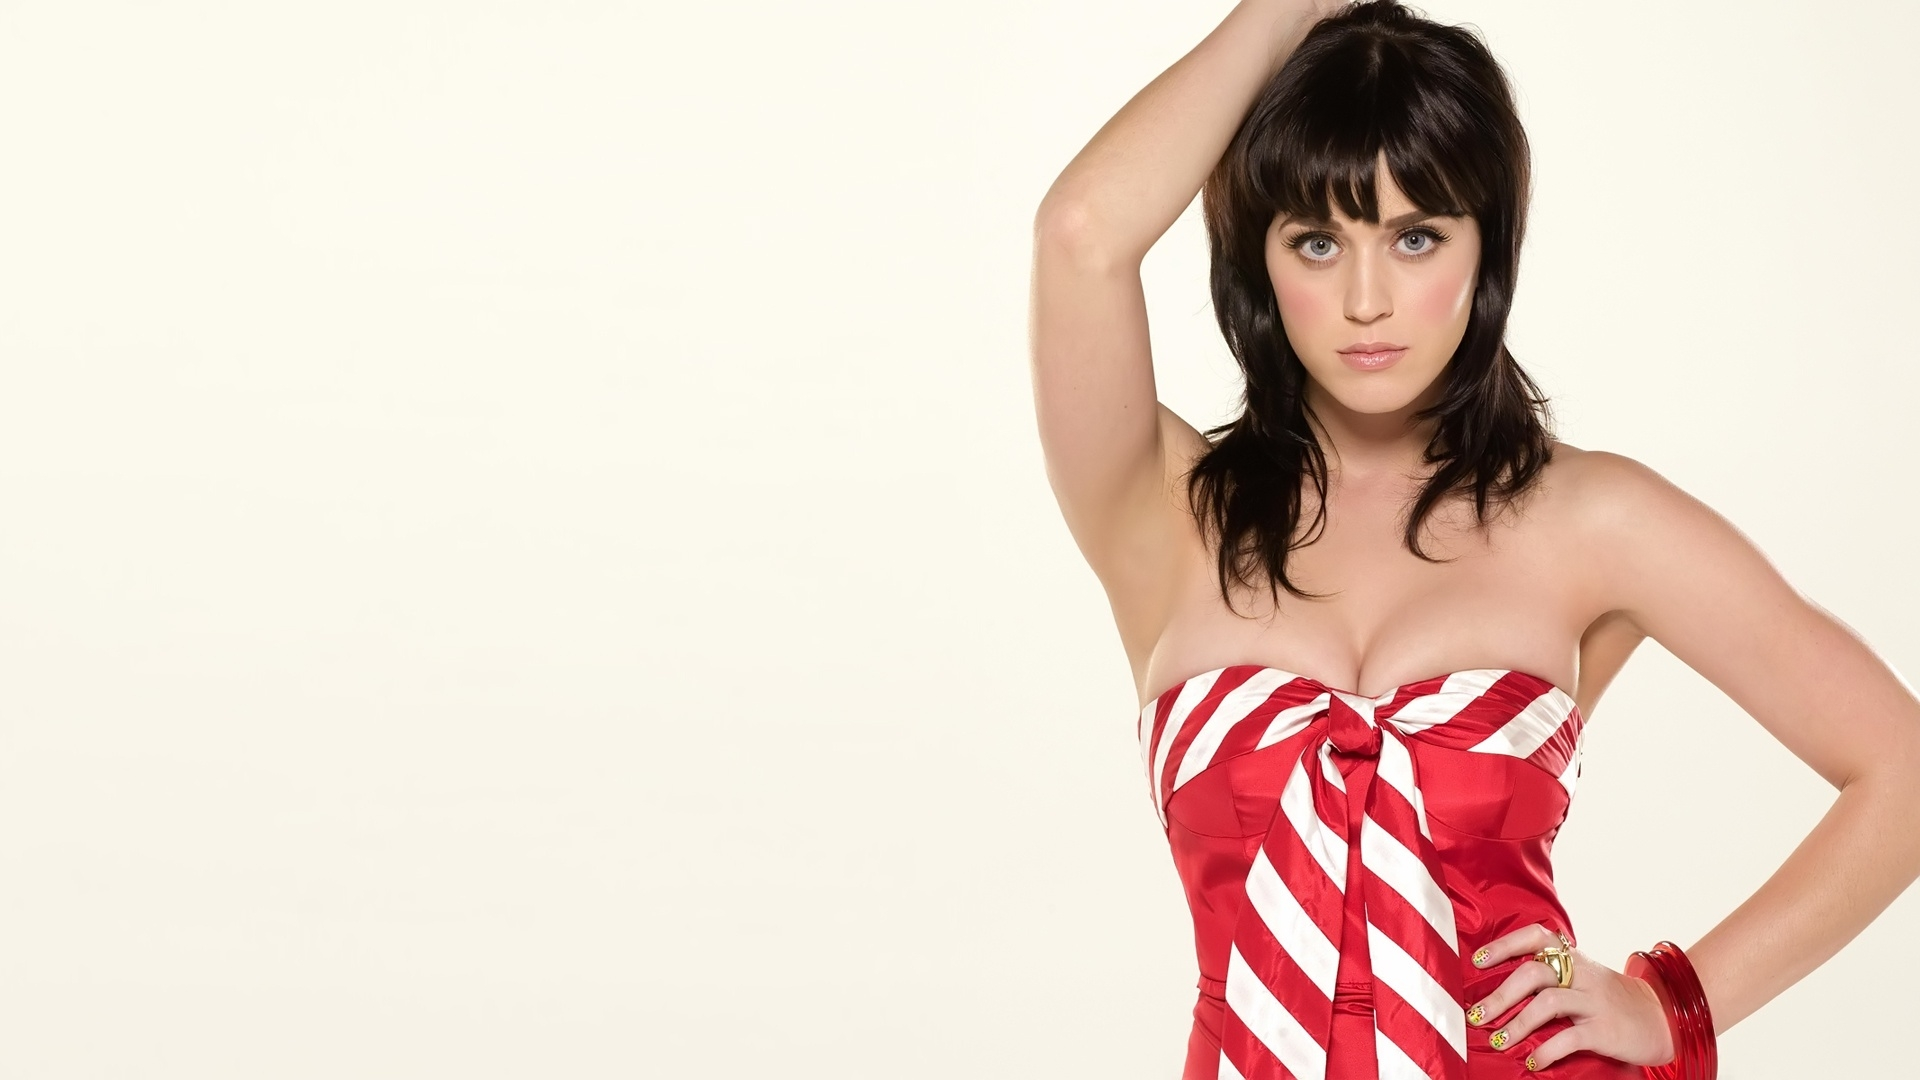 HD Katy Perry Wallpapers and Photos  HD Celebrities Wallpapers 1920x1080